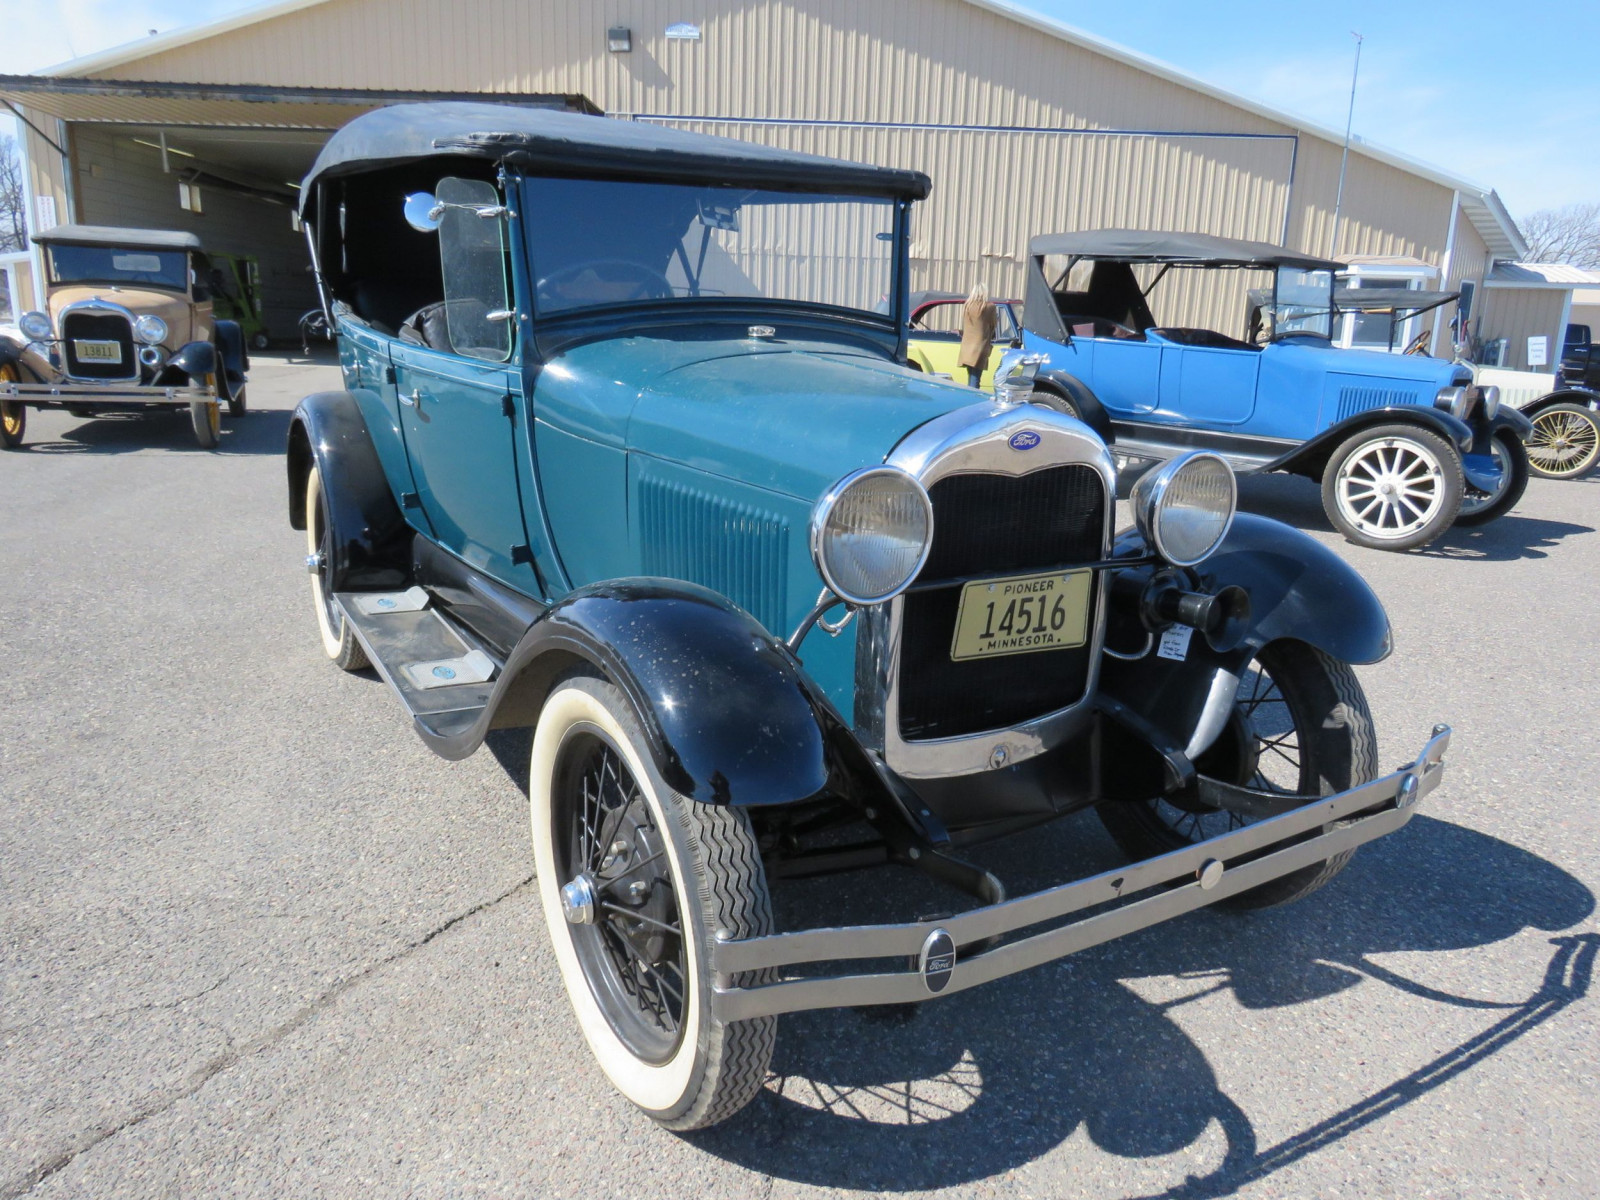 1929 Ford Model A Phaeton - Image 16